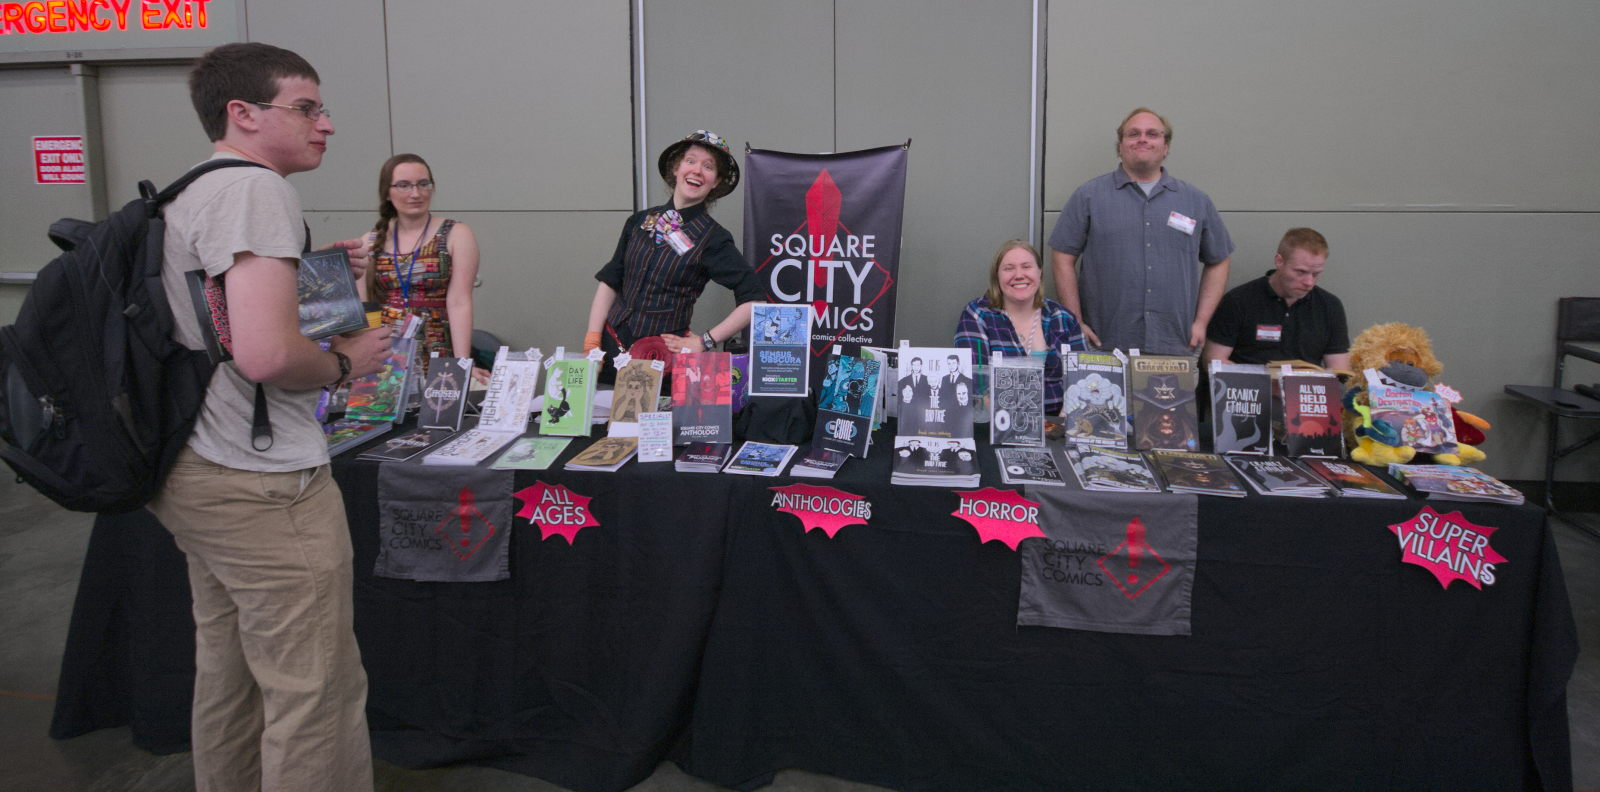 Square City Comics at Baltimore Comic-Con 2016